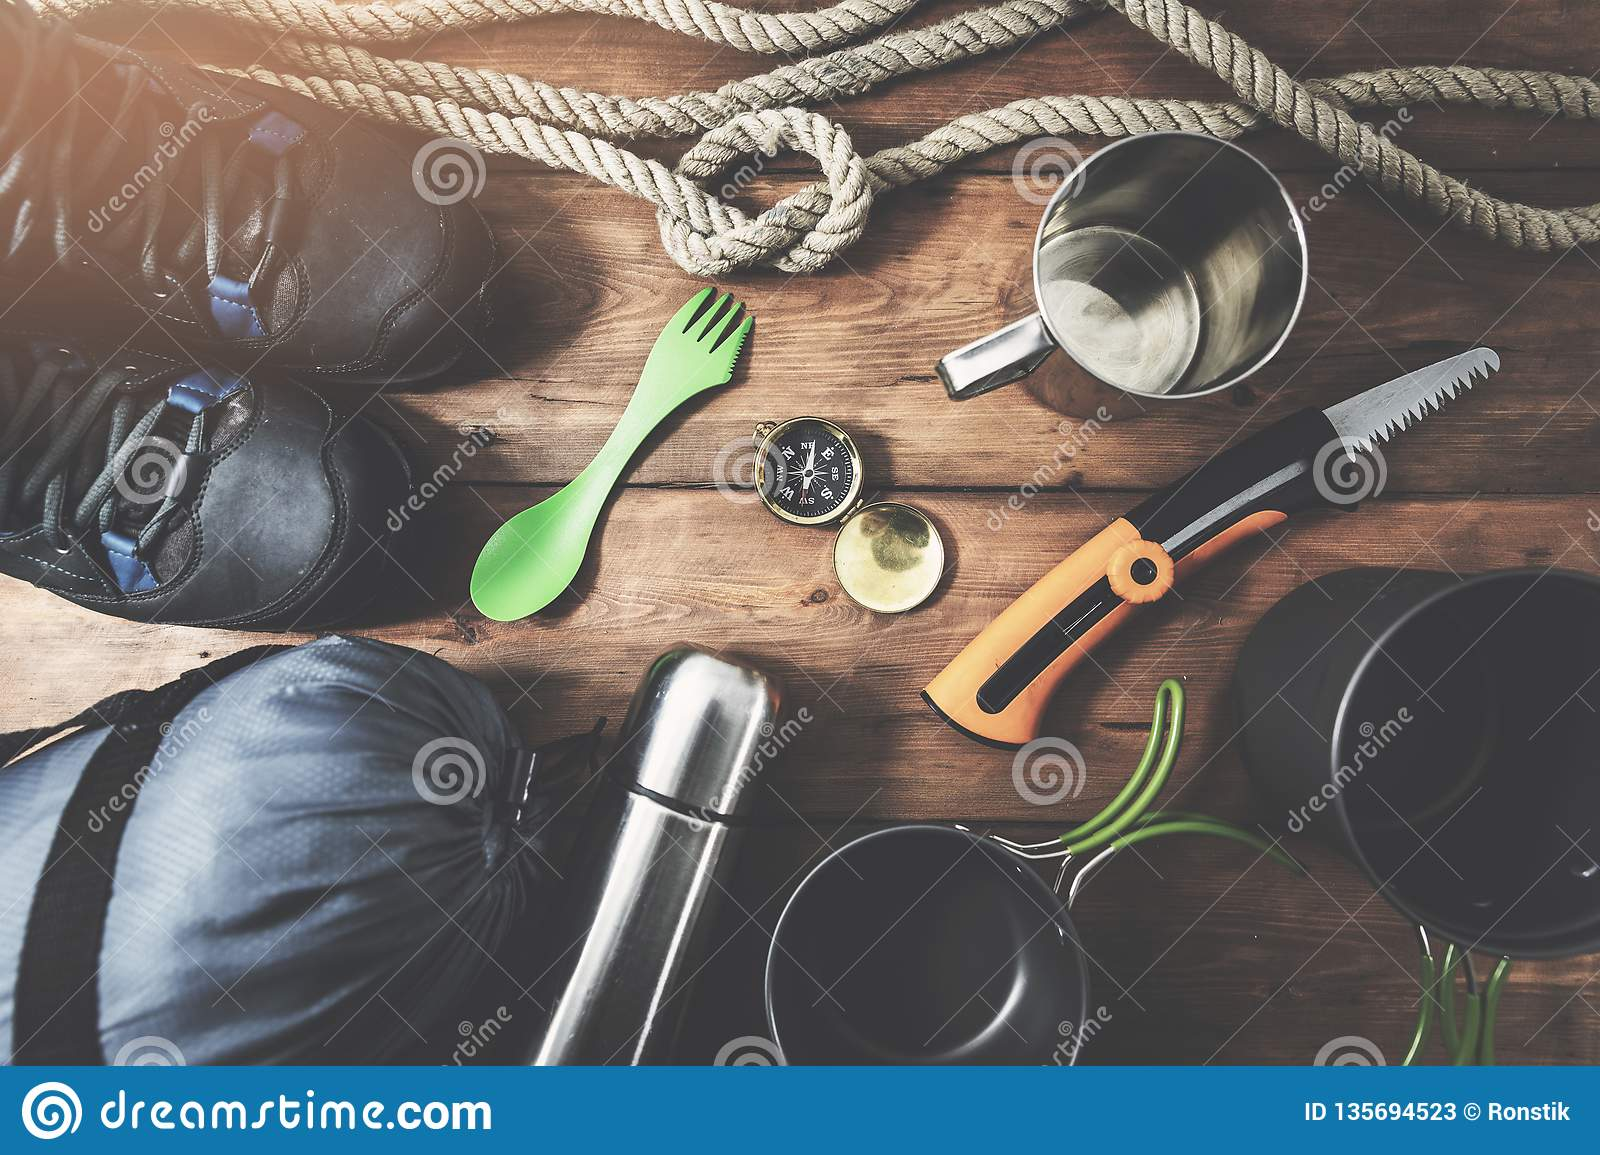 expedition camping equipment on wooden plank background